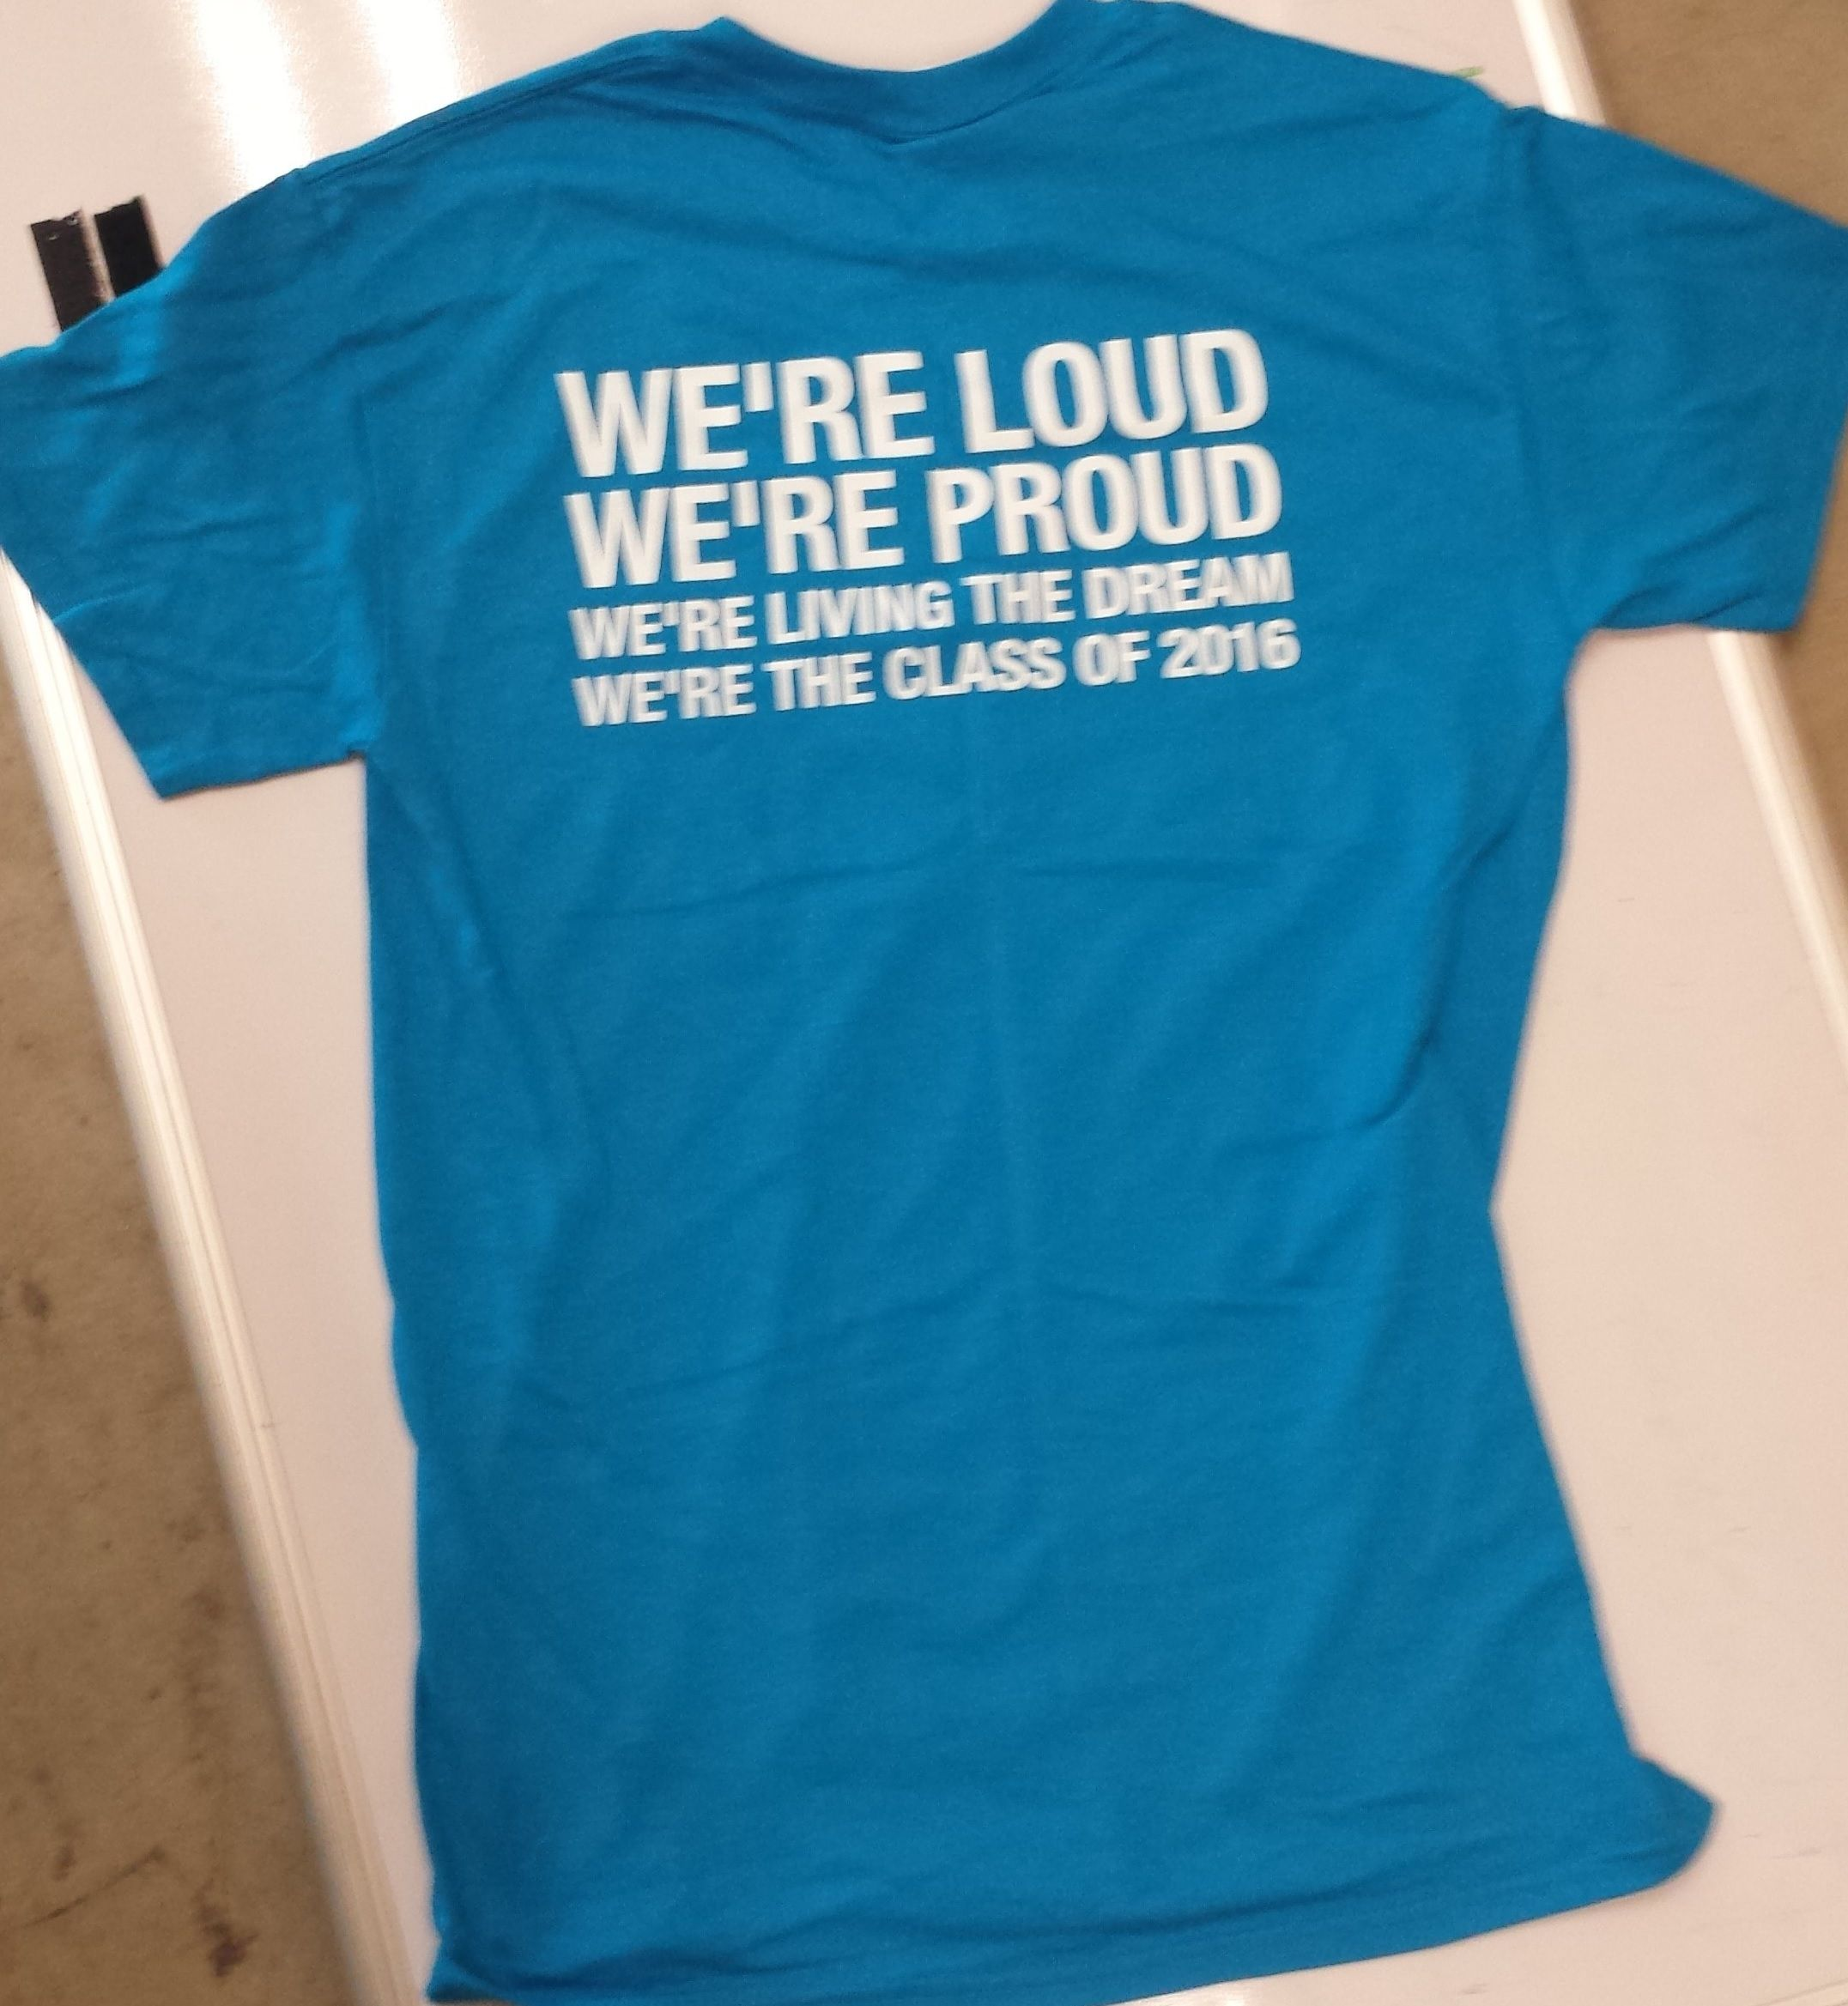 class of 2016 shirt sayings - Google Search | Class of ...